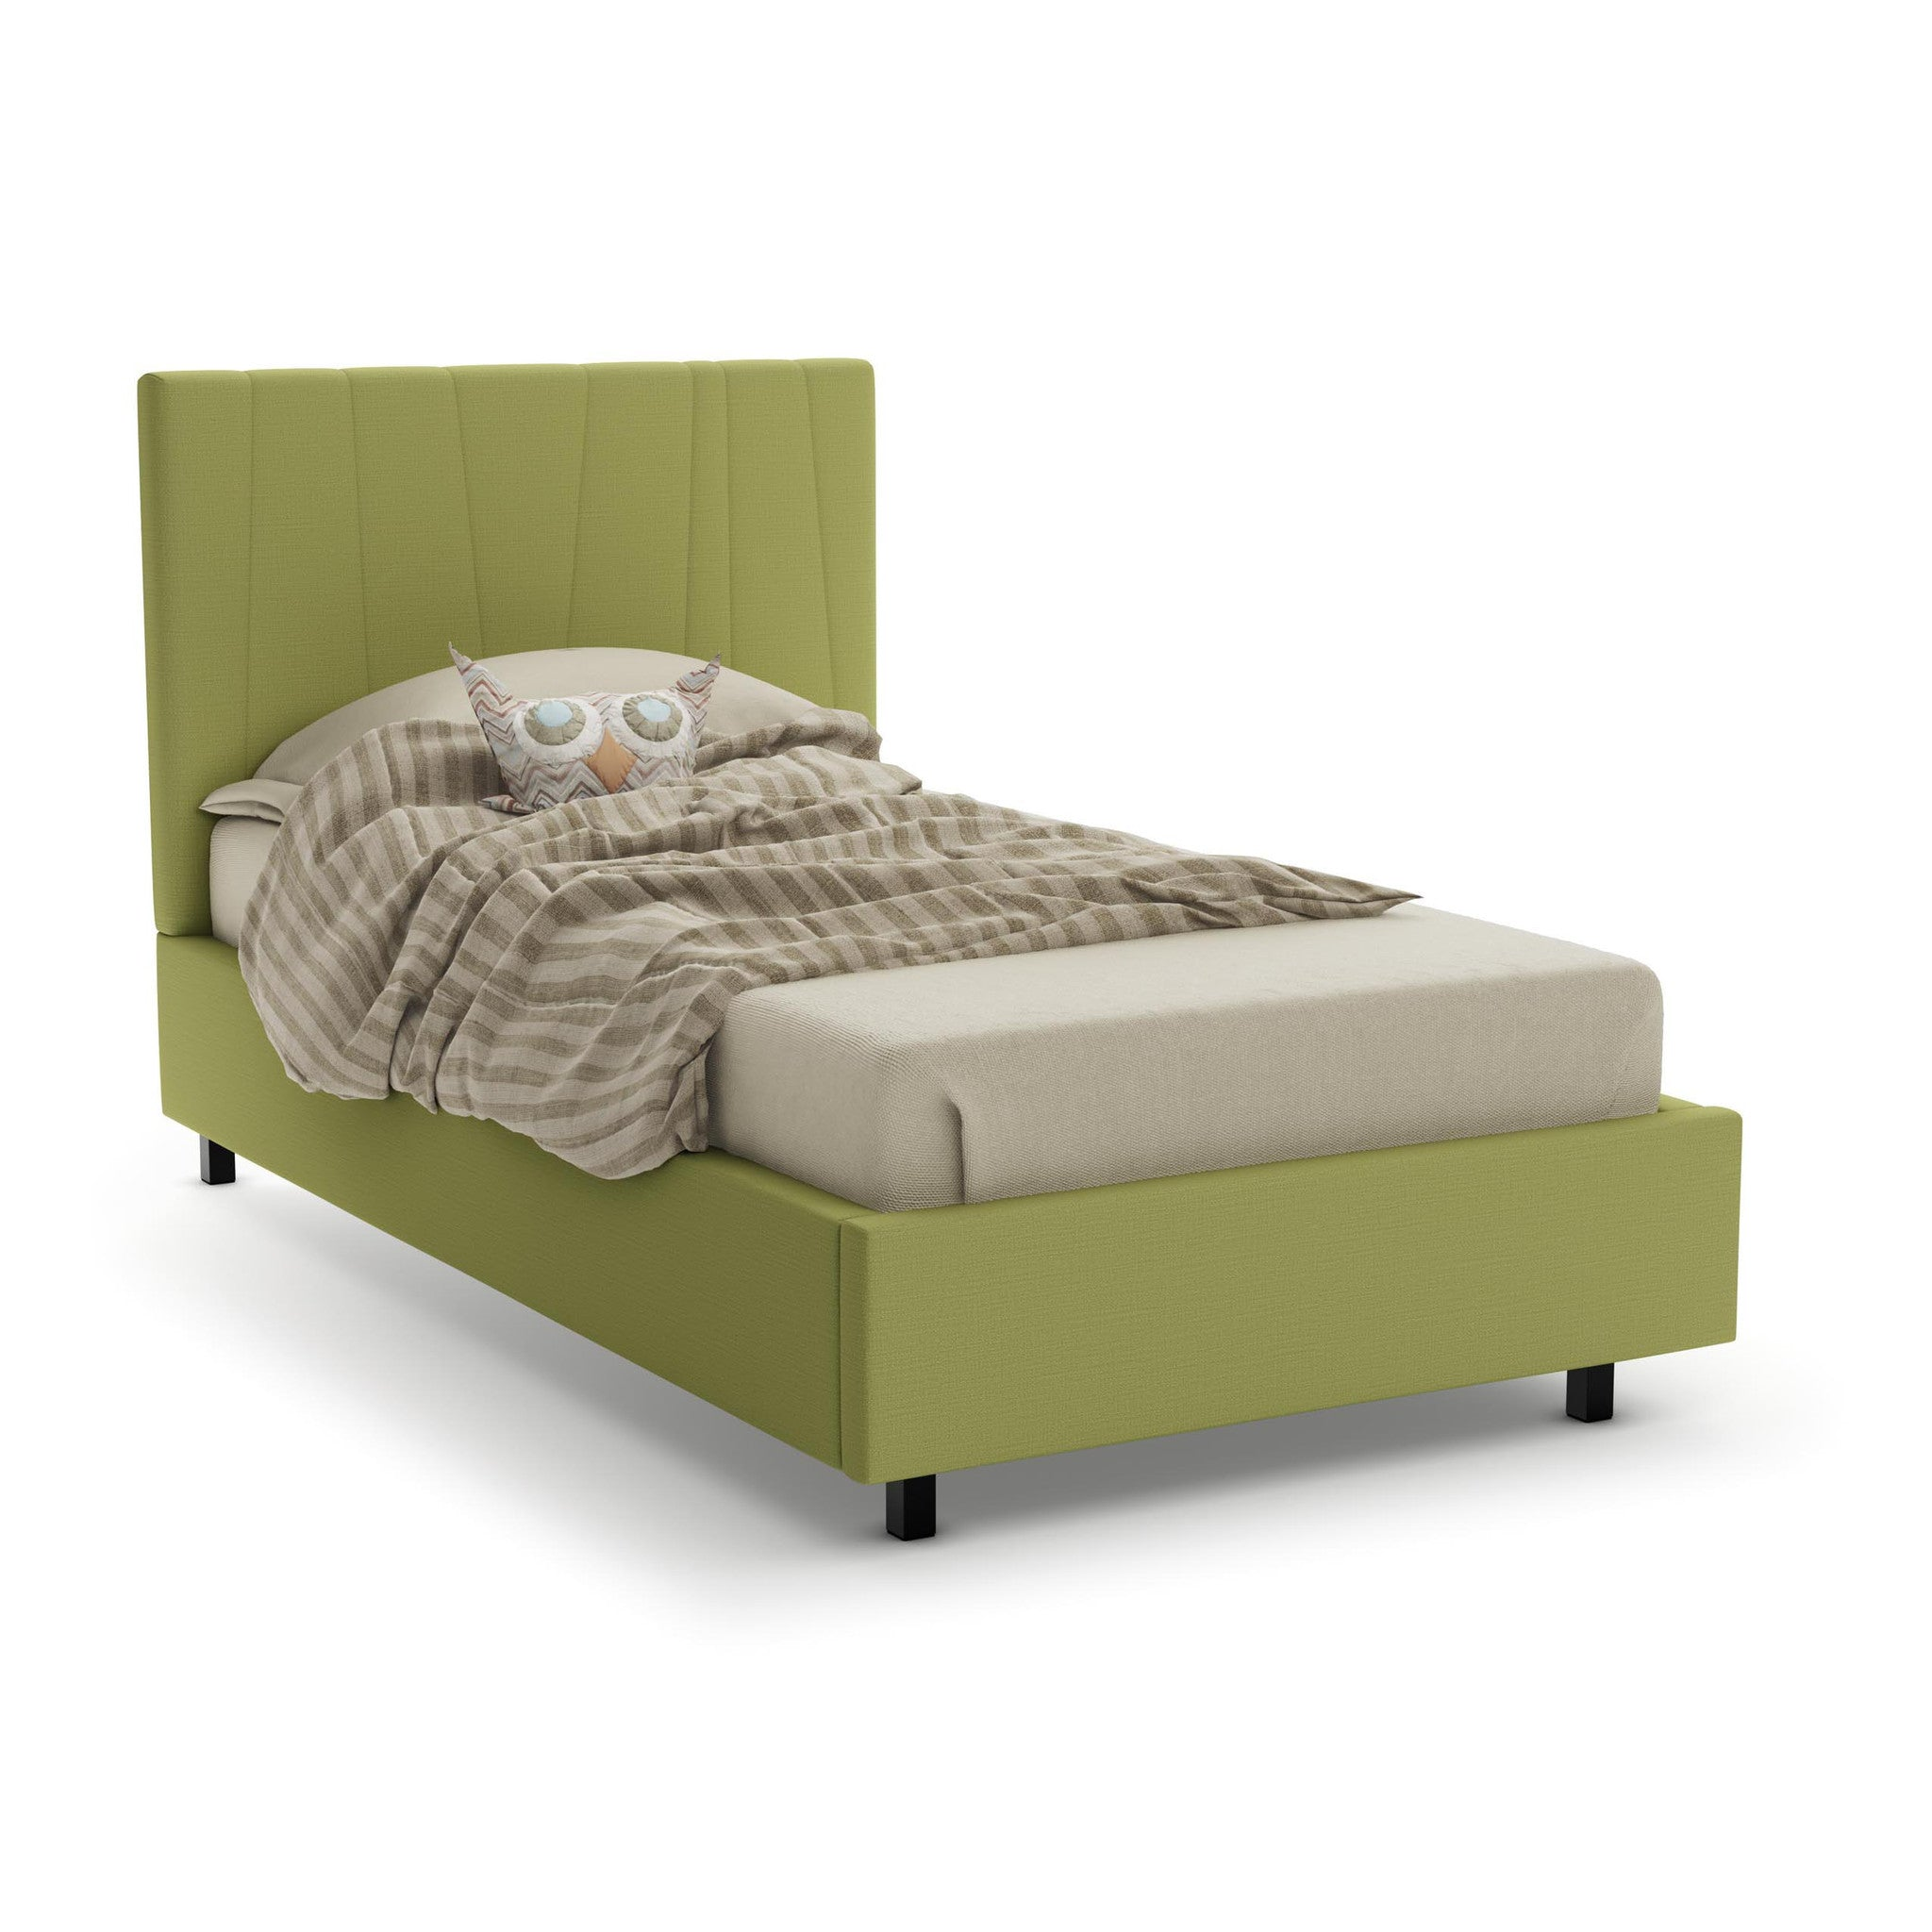 Picture of Namaste Bed